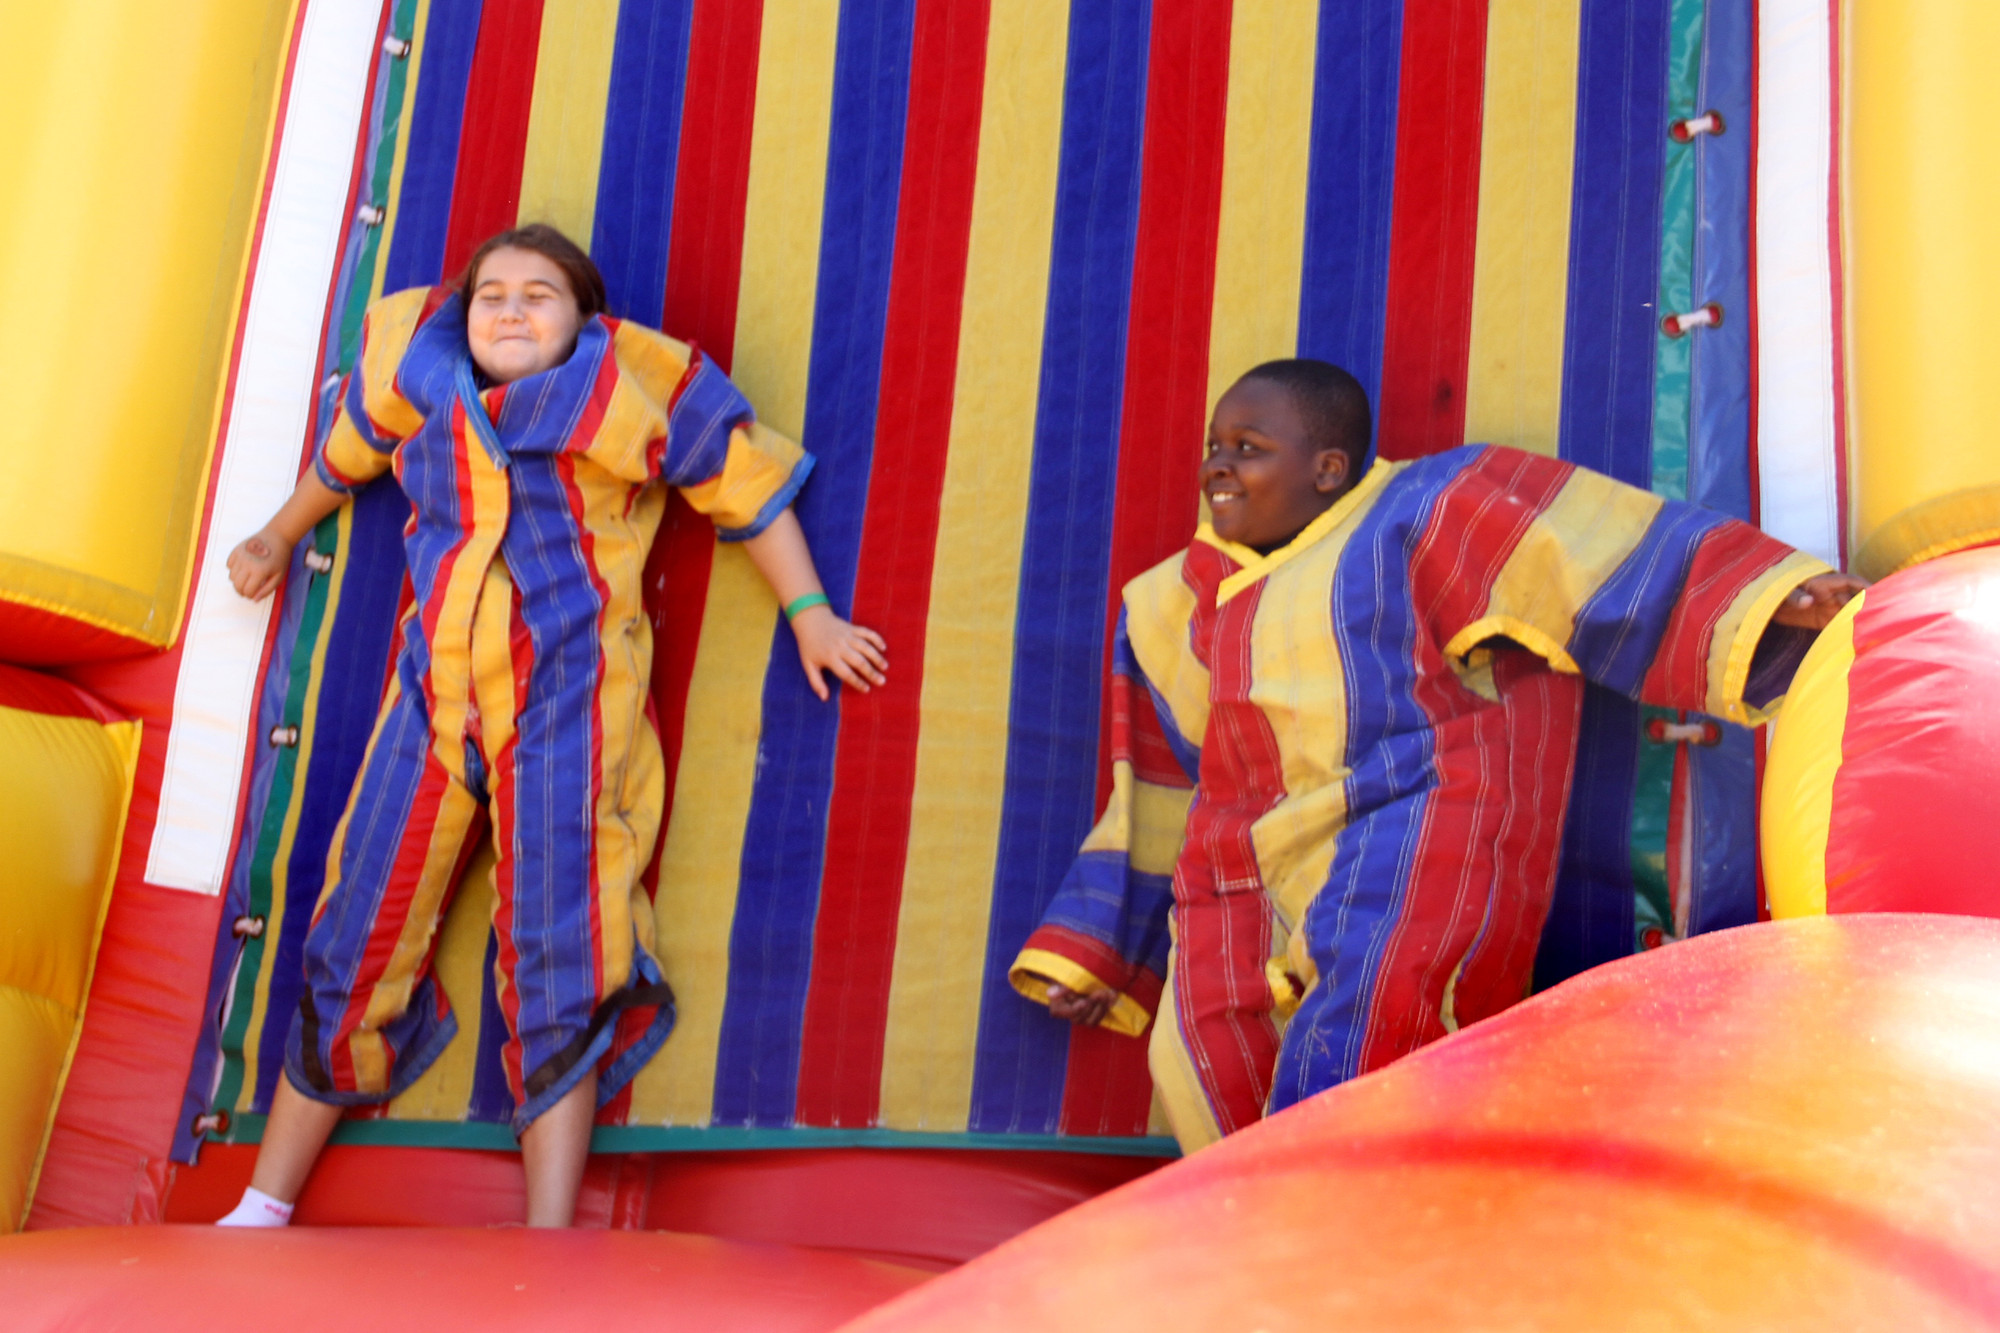 Dena Pezakas and Tory Marshall got caught up playing on the velcro wall.